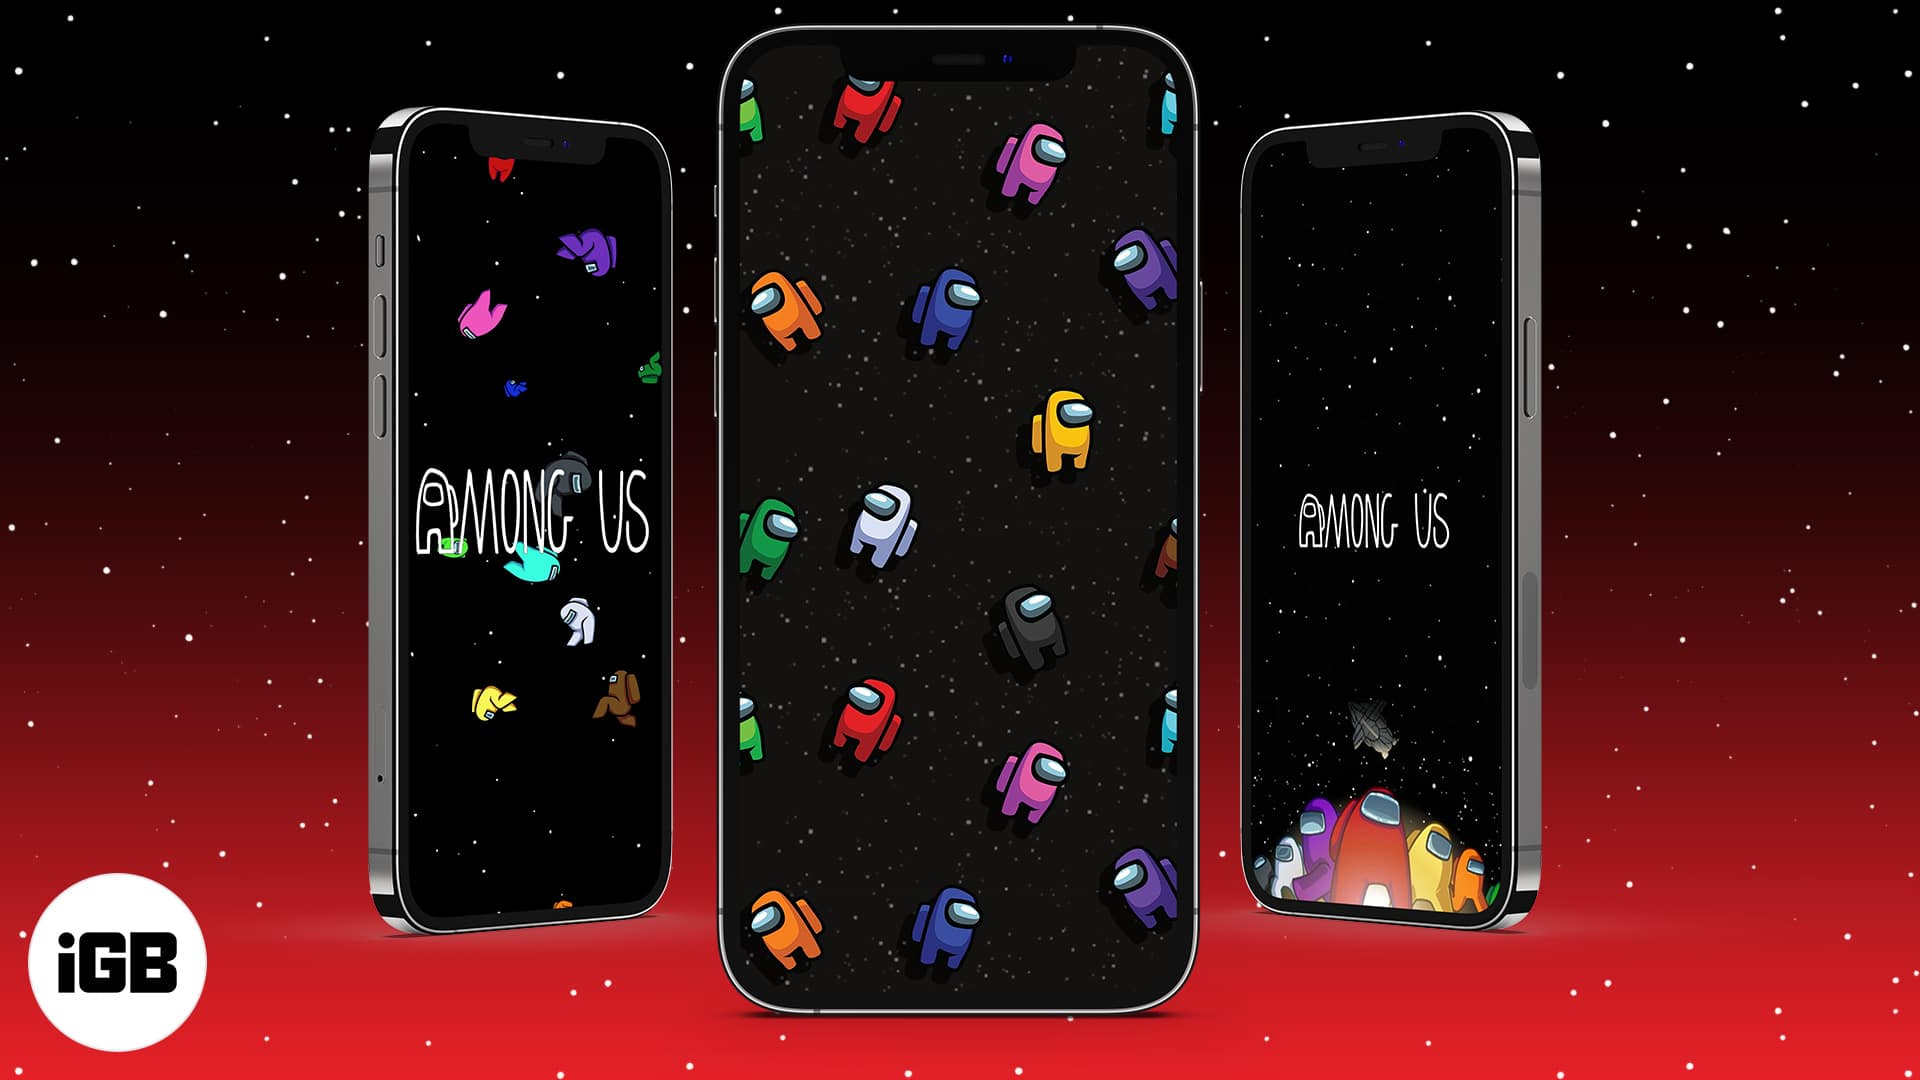 Best Among Us Wallpapers for iPhone